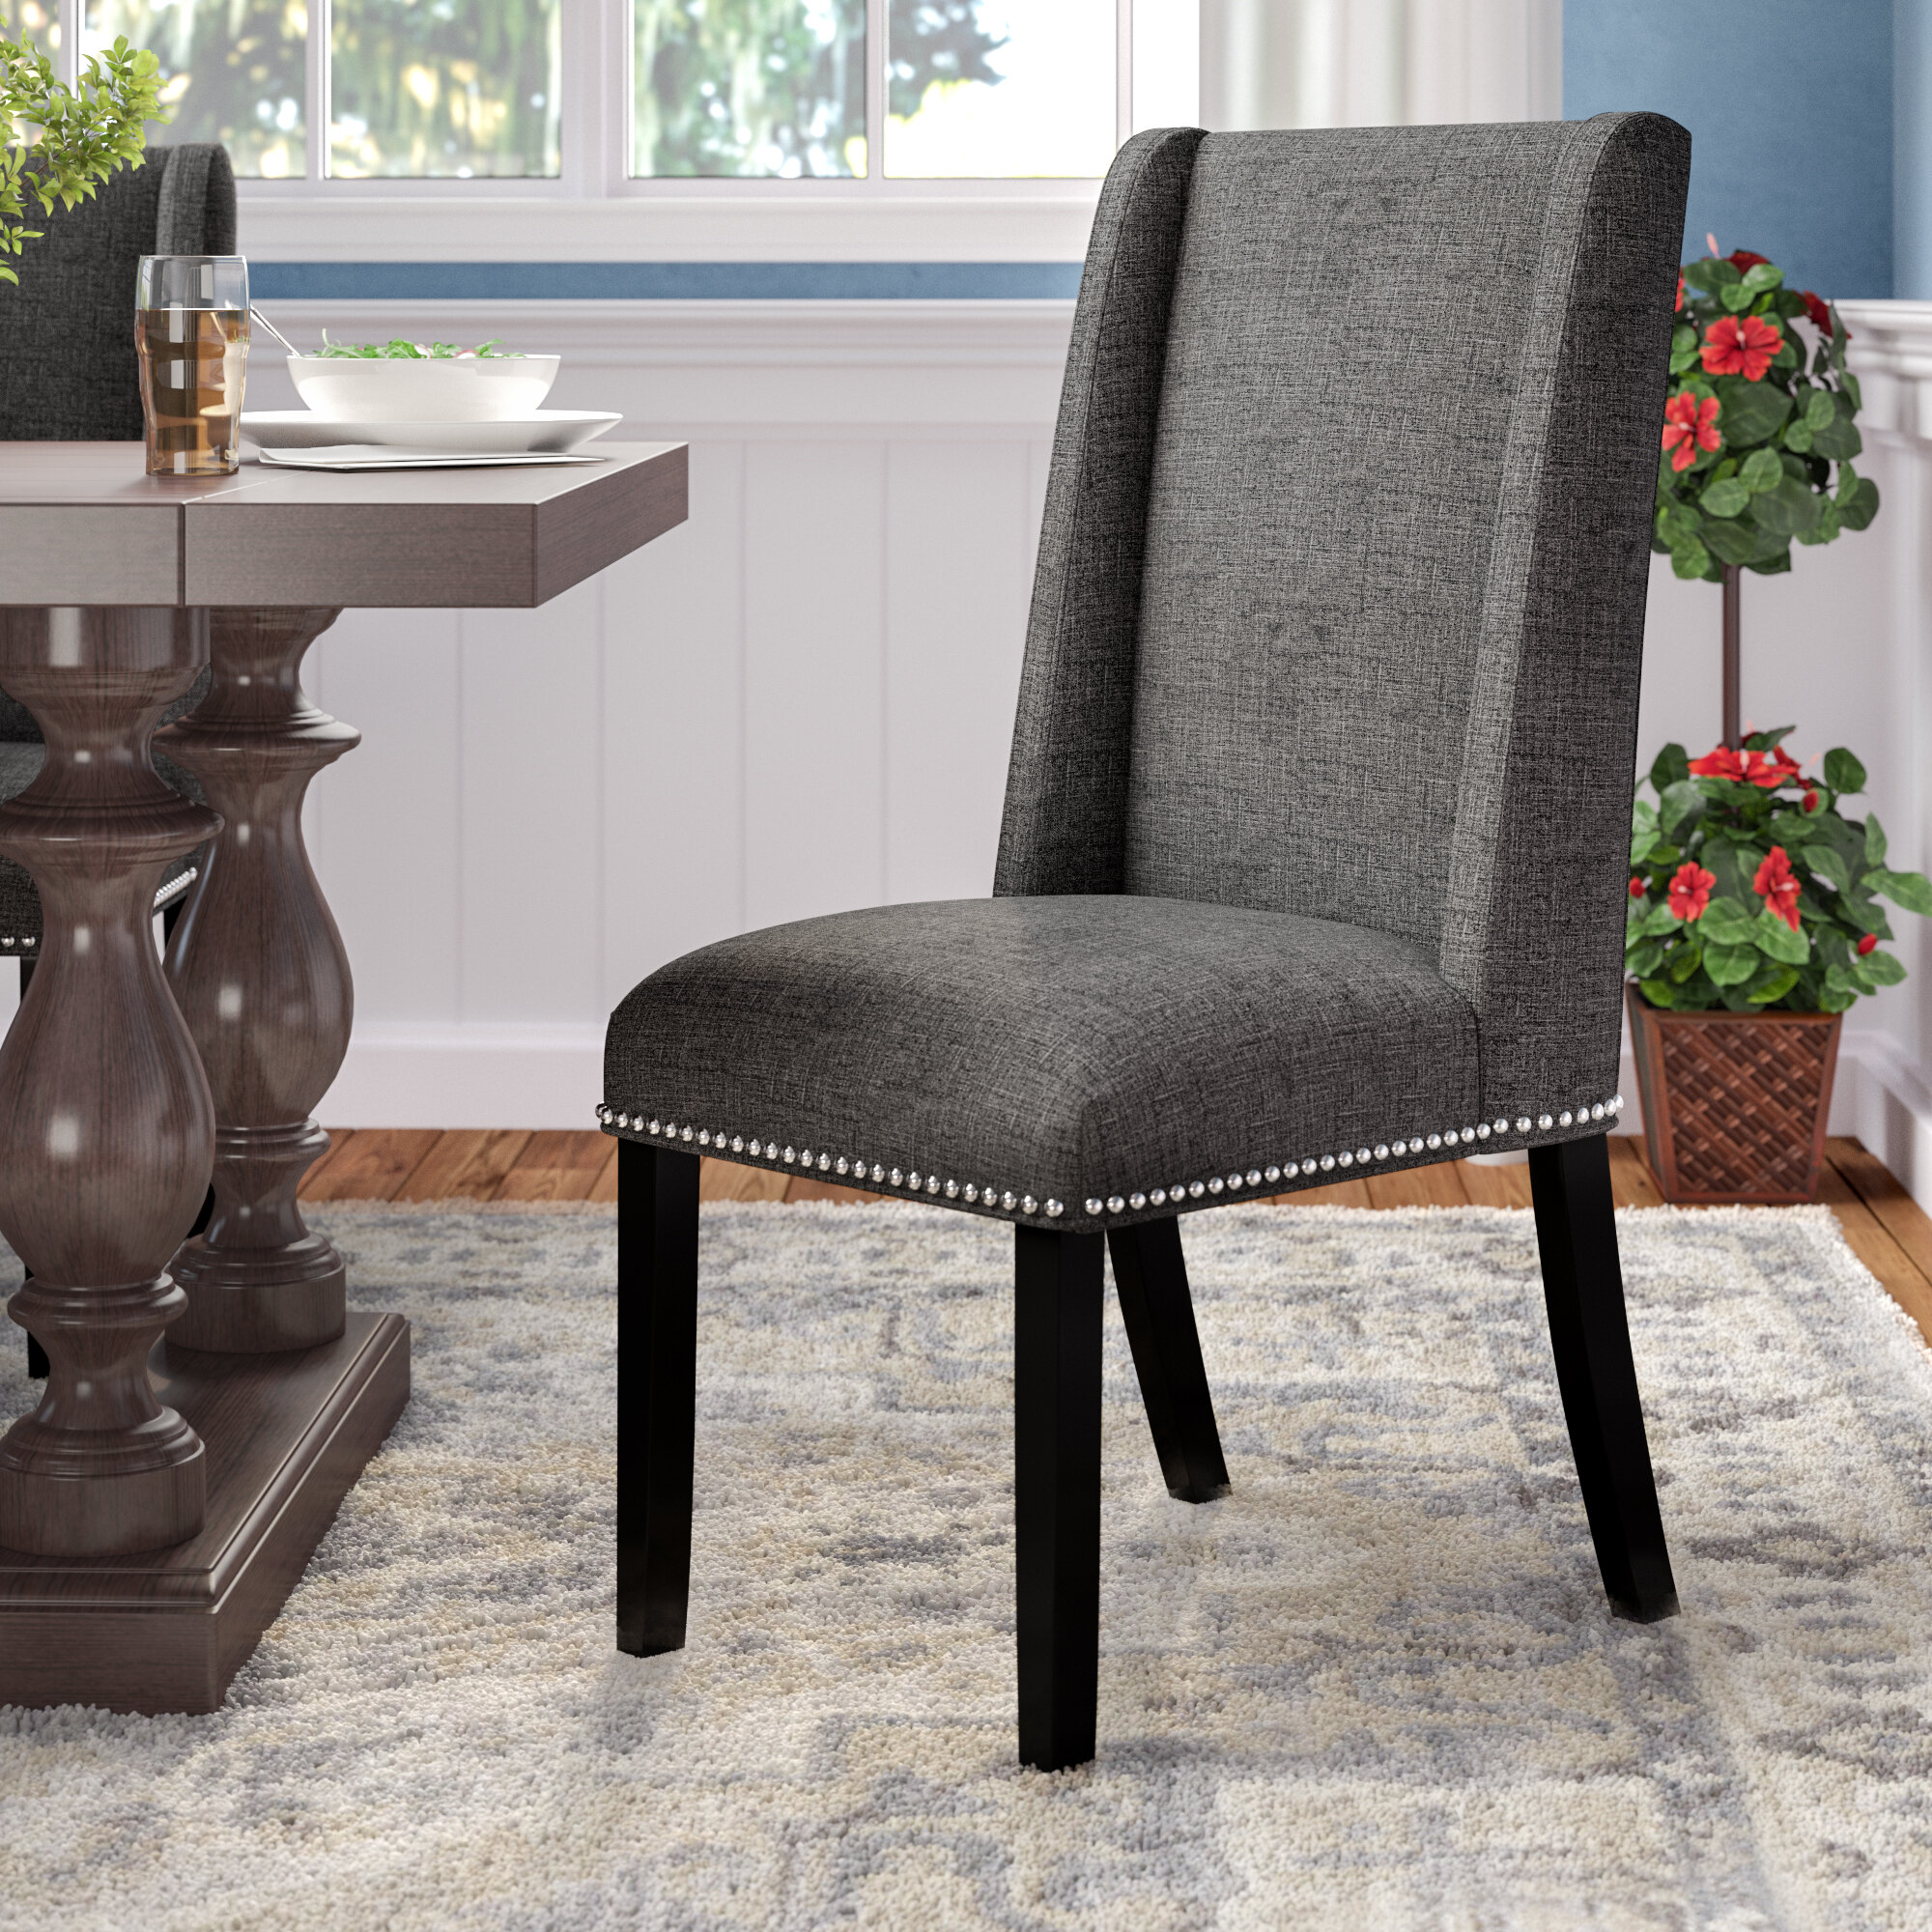 Darby Home Co | Wayfair